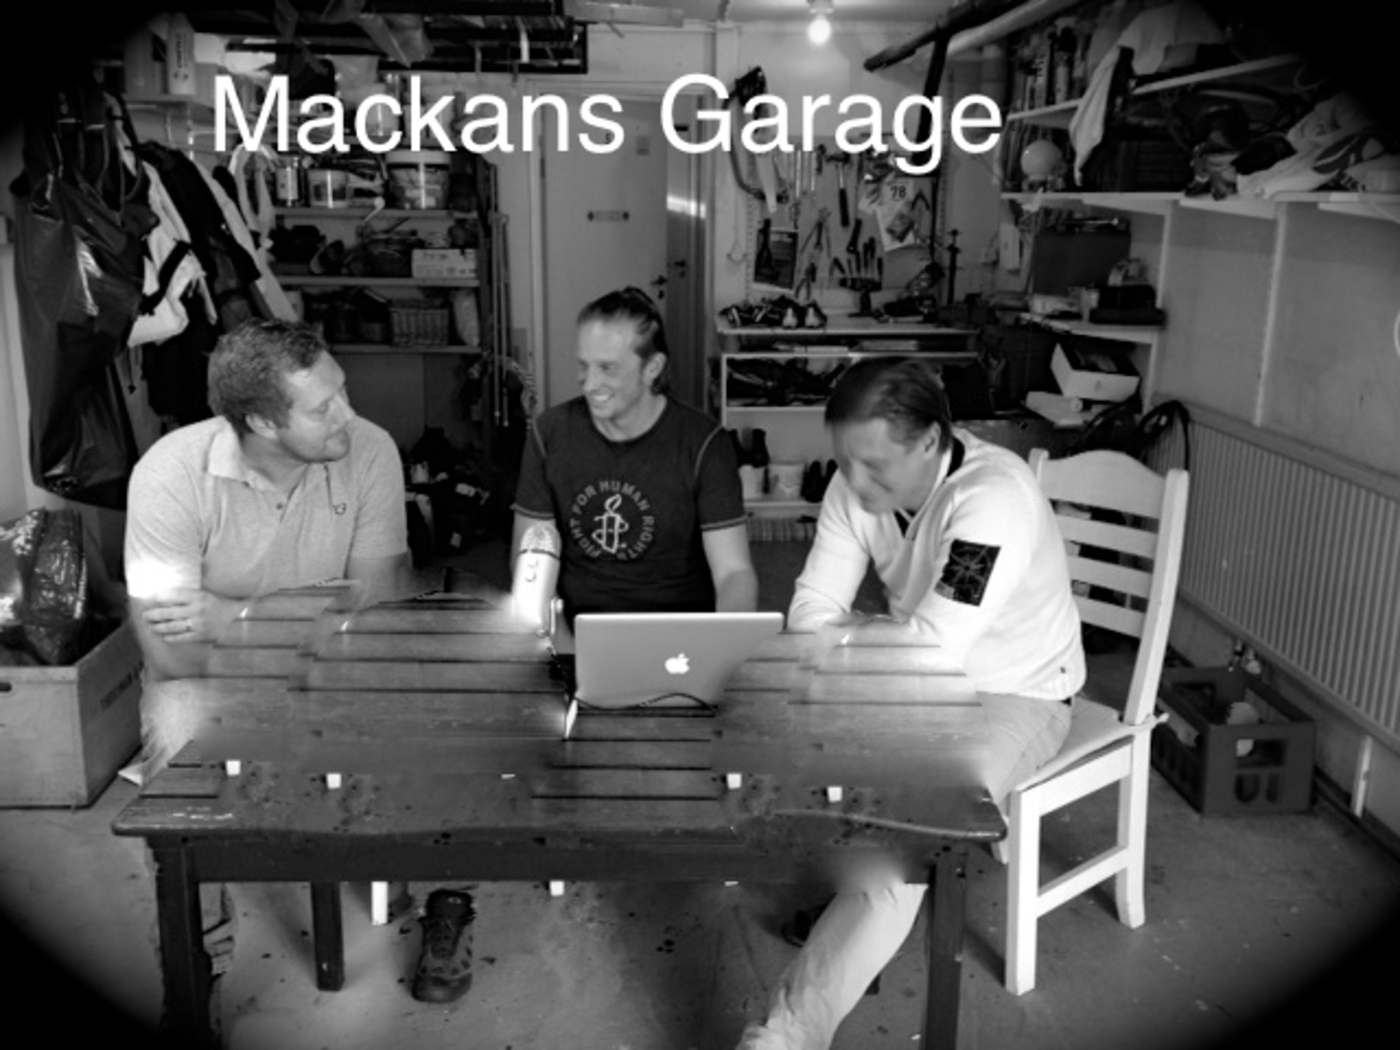 Mackans Garage's Podcast